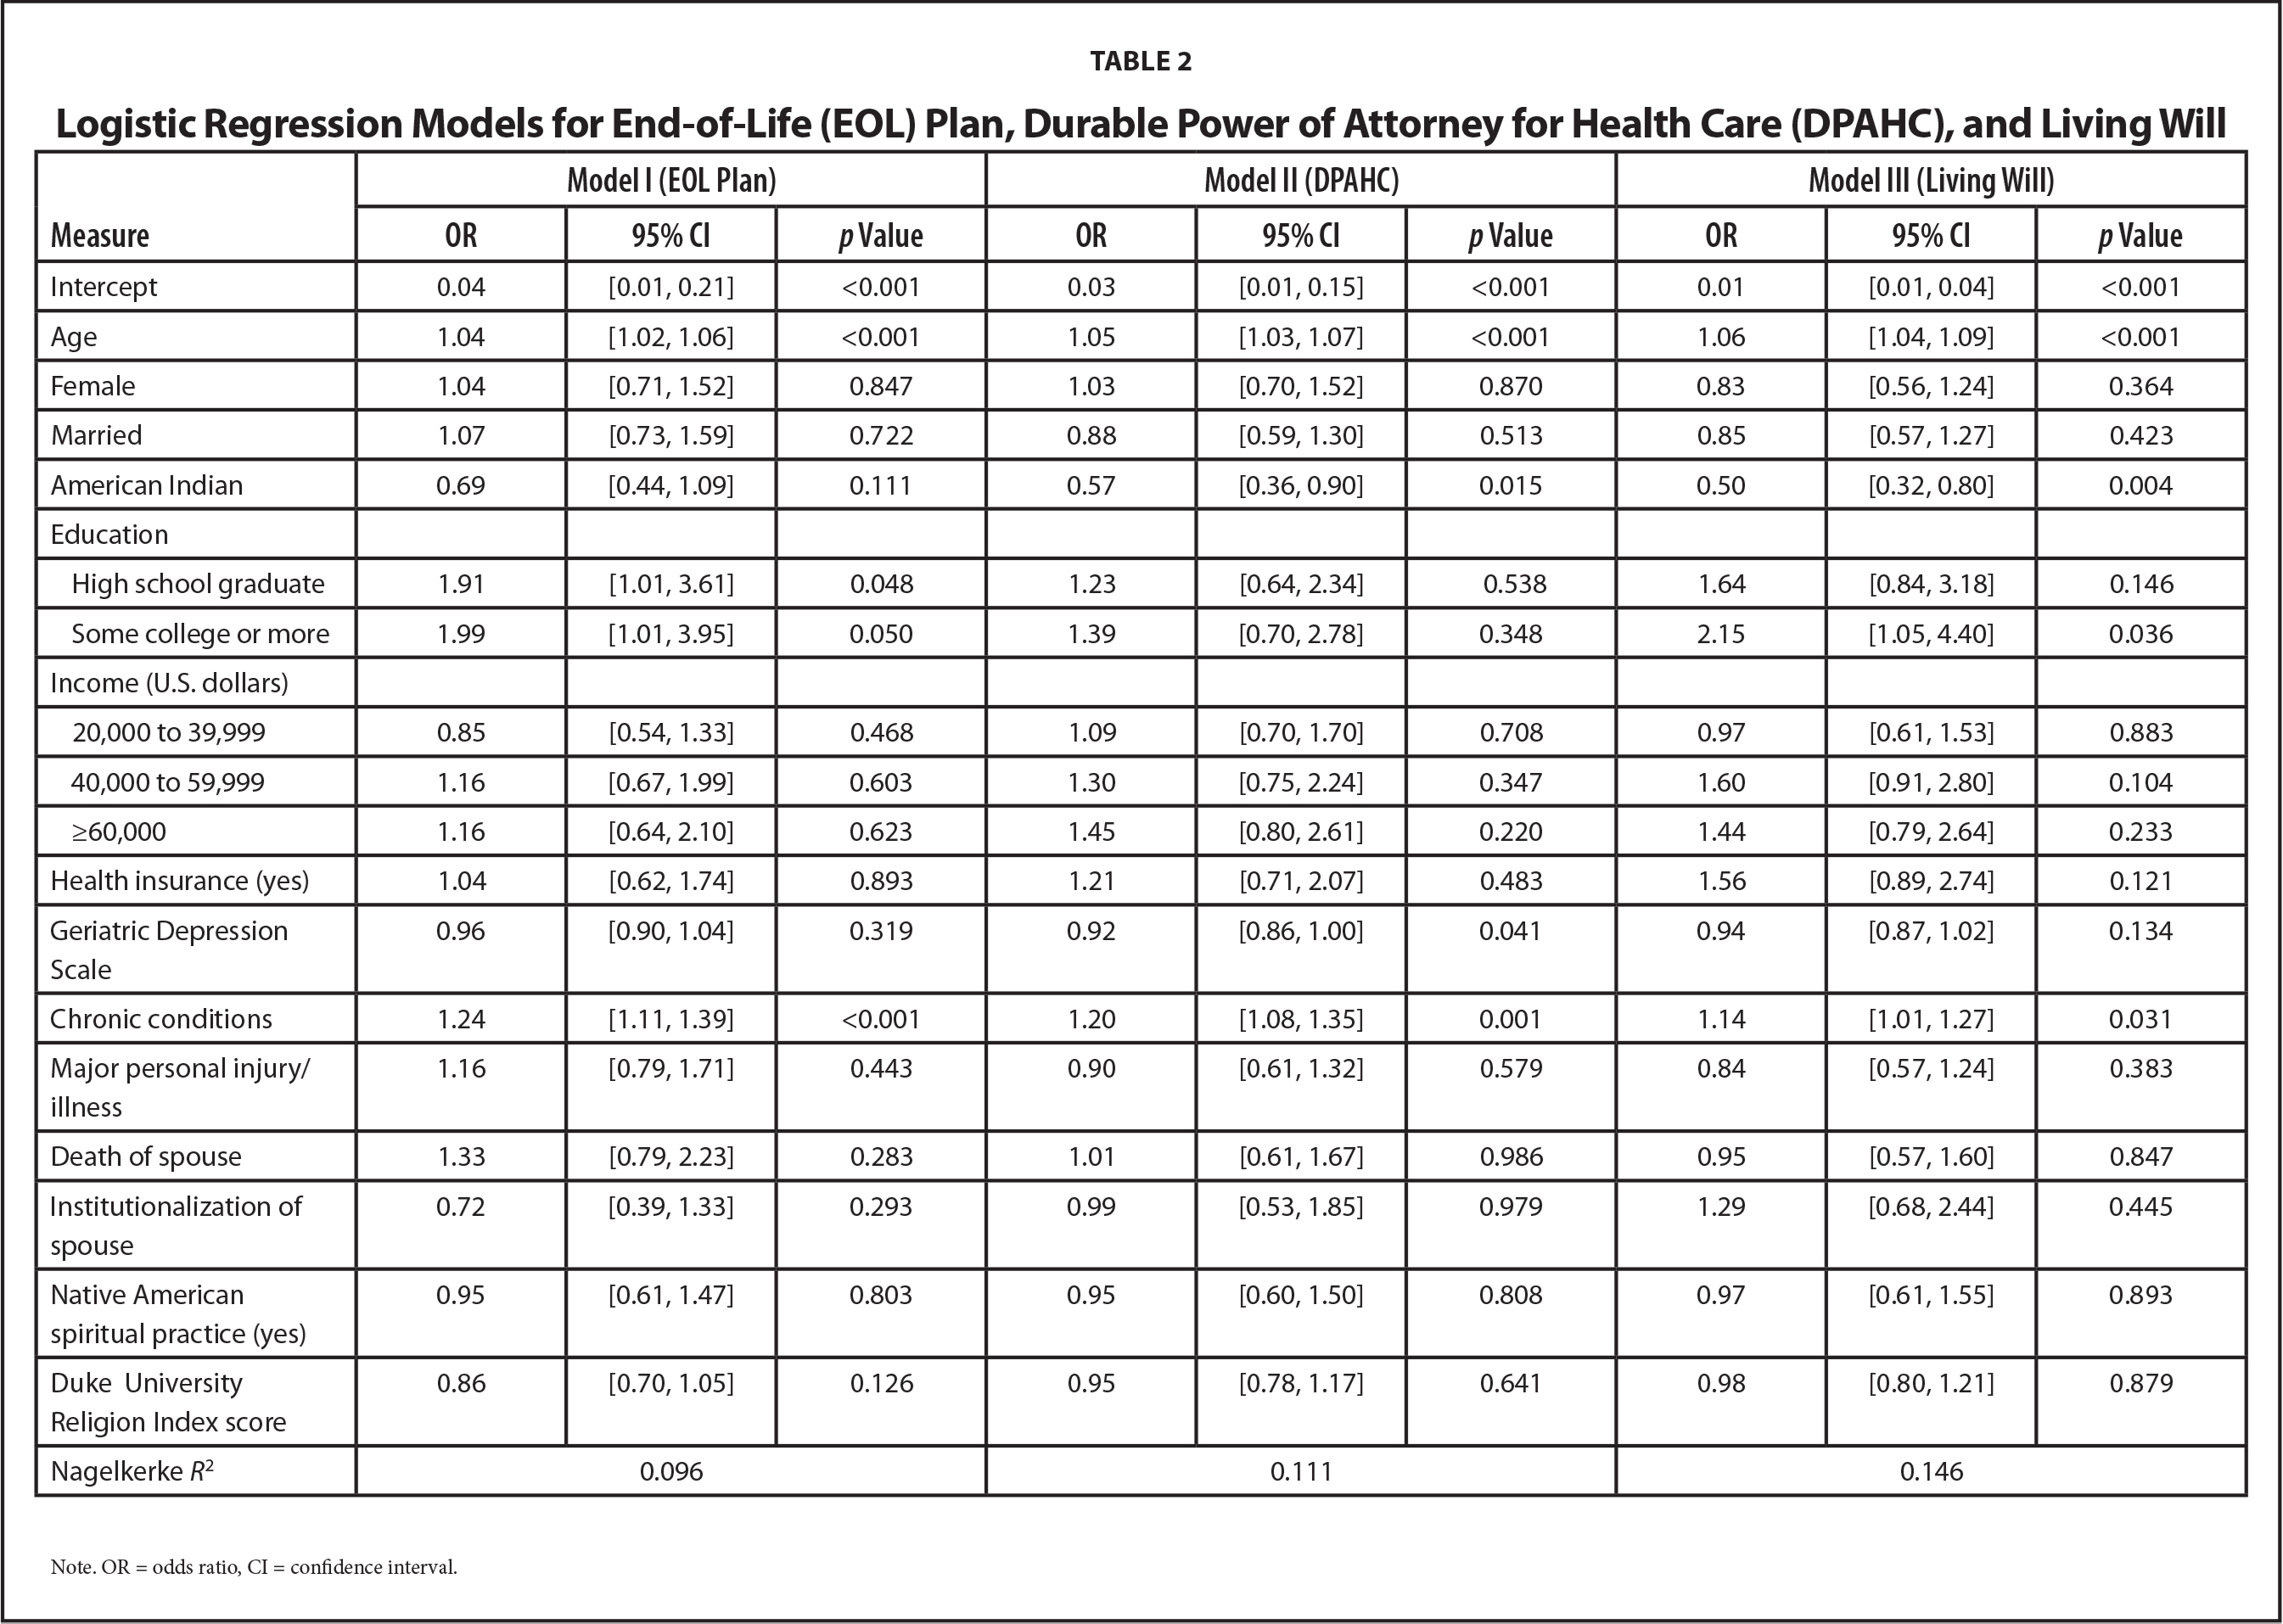 Logistic Regression Models for End-of-Life (EOL) Plan, Durable Power of Attorney for Health Care (DPAHC), and Living Will